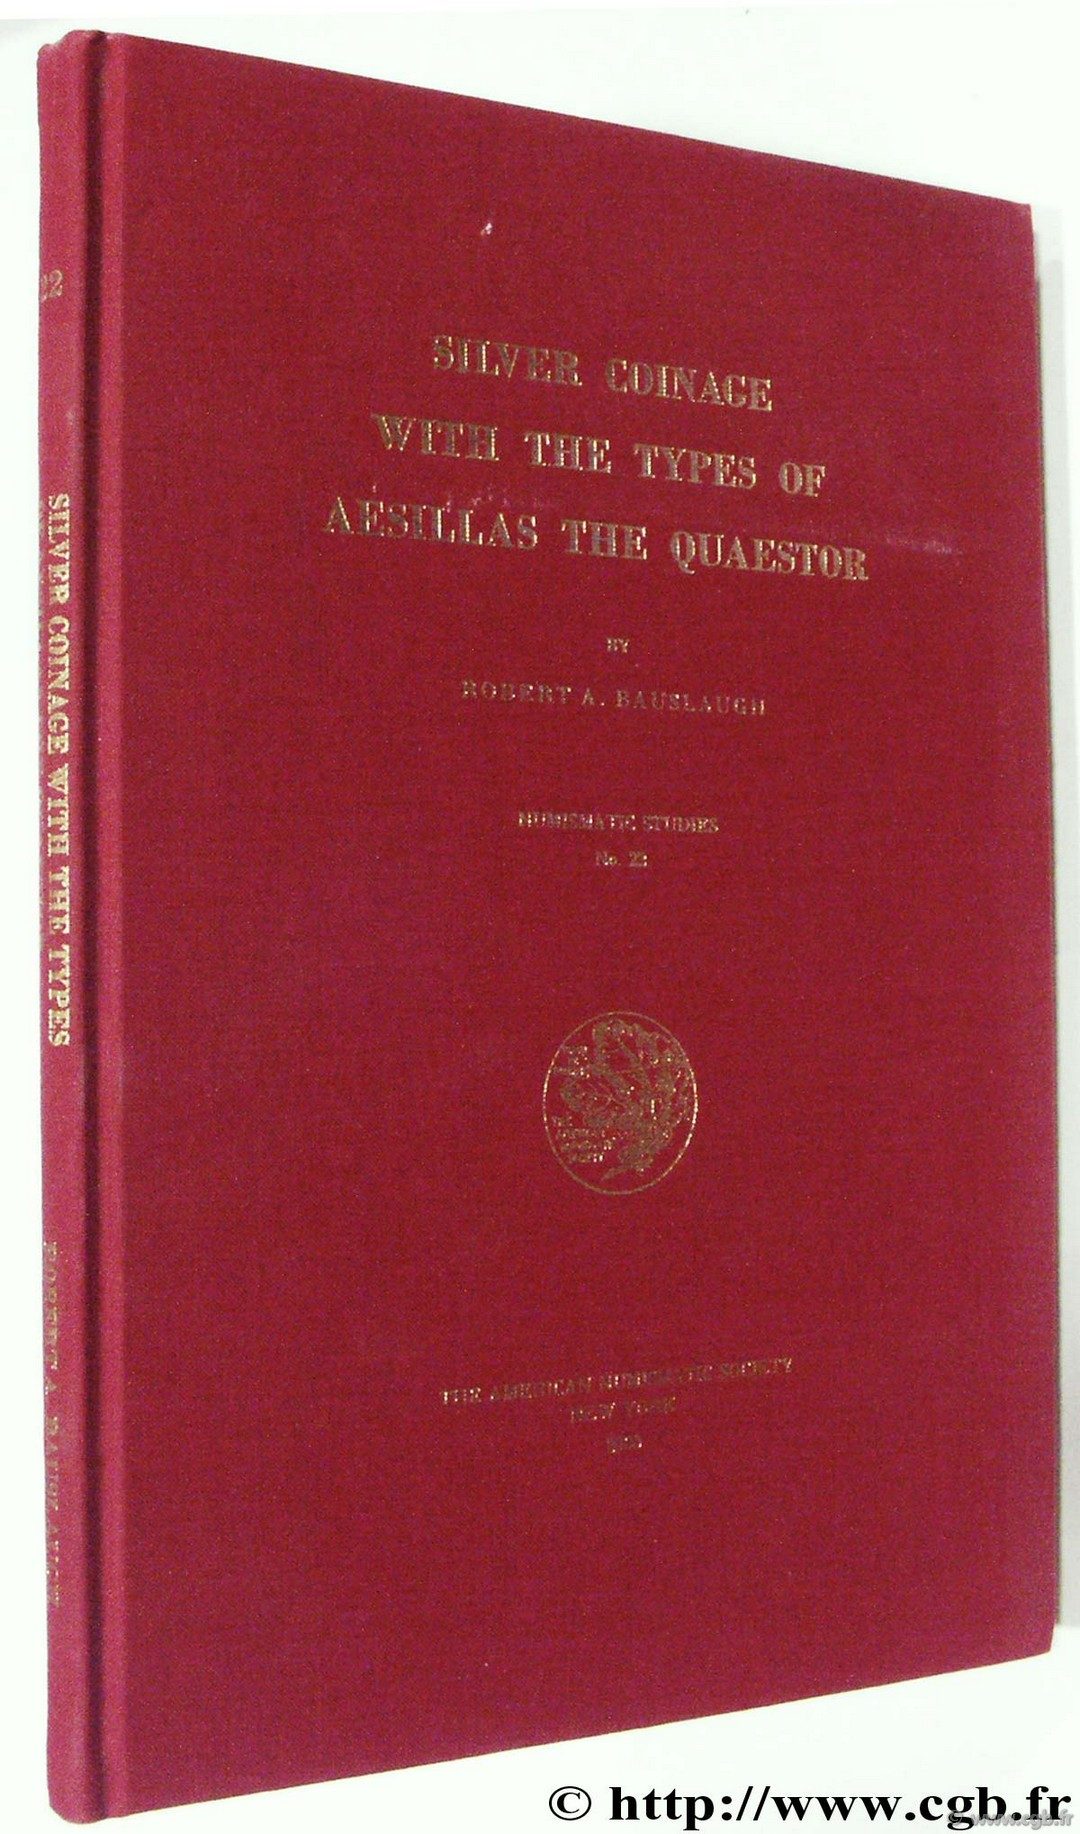 Silver Coinage with the Types of Aesillas the Quaestor, Numismatic Studies 22, The American Numismatic Society BAUSLAUGH R.-A.